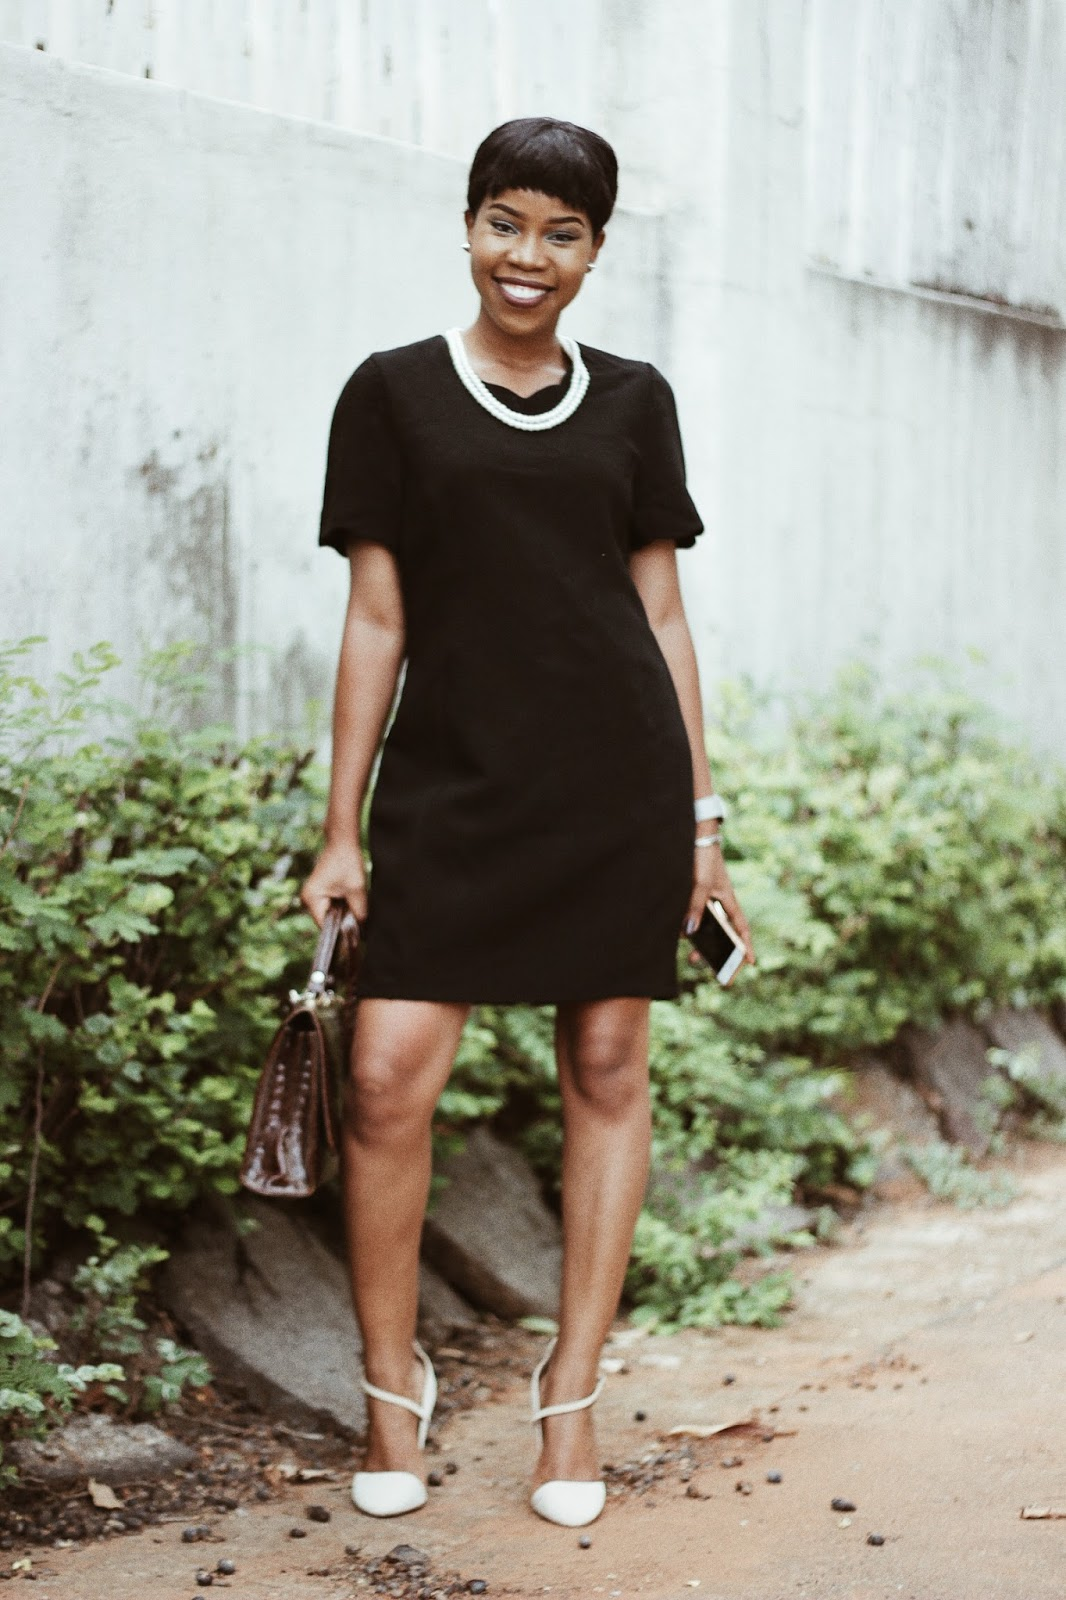 BLACK RULE OF VINTAGE SLAY (LBD)